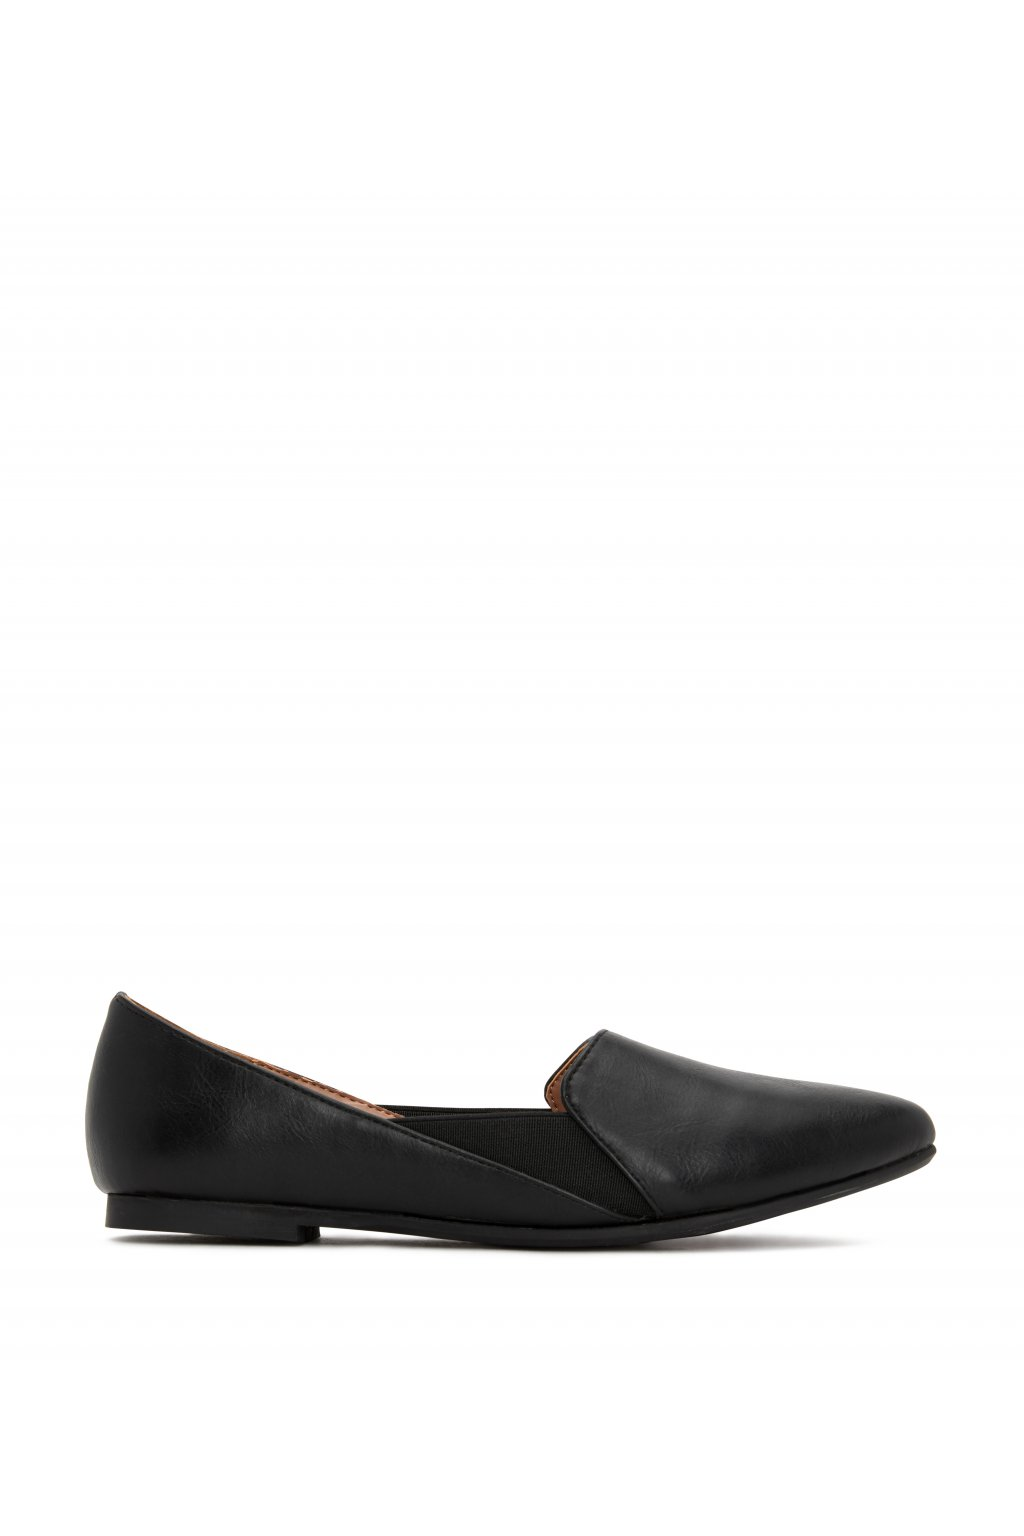 ss20 shoes westmount black 1